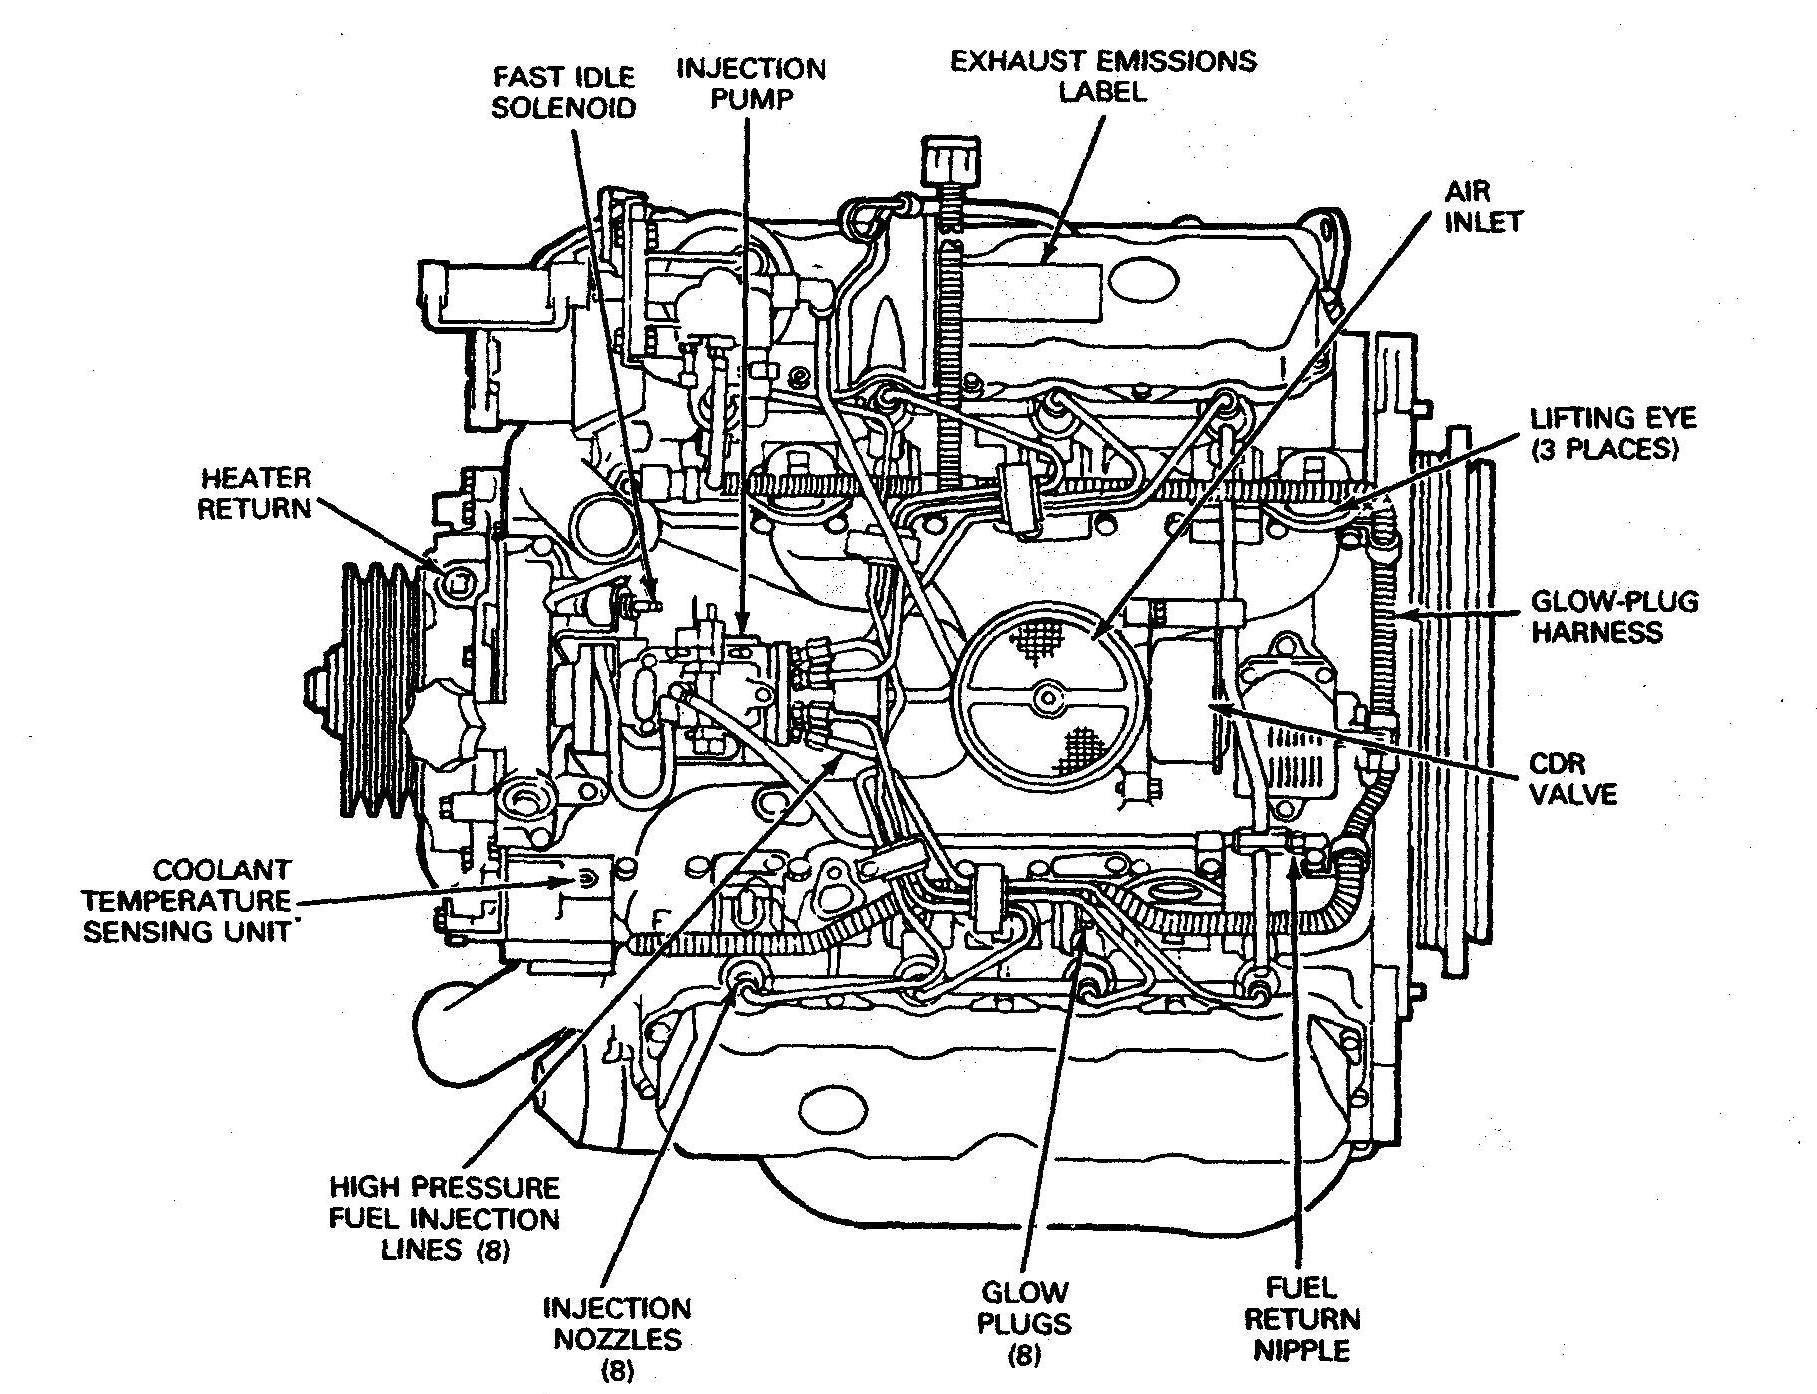 small resolution of ford 7 3 engine parts diagram my car parts engineering diesel cars ford 7